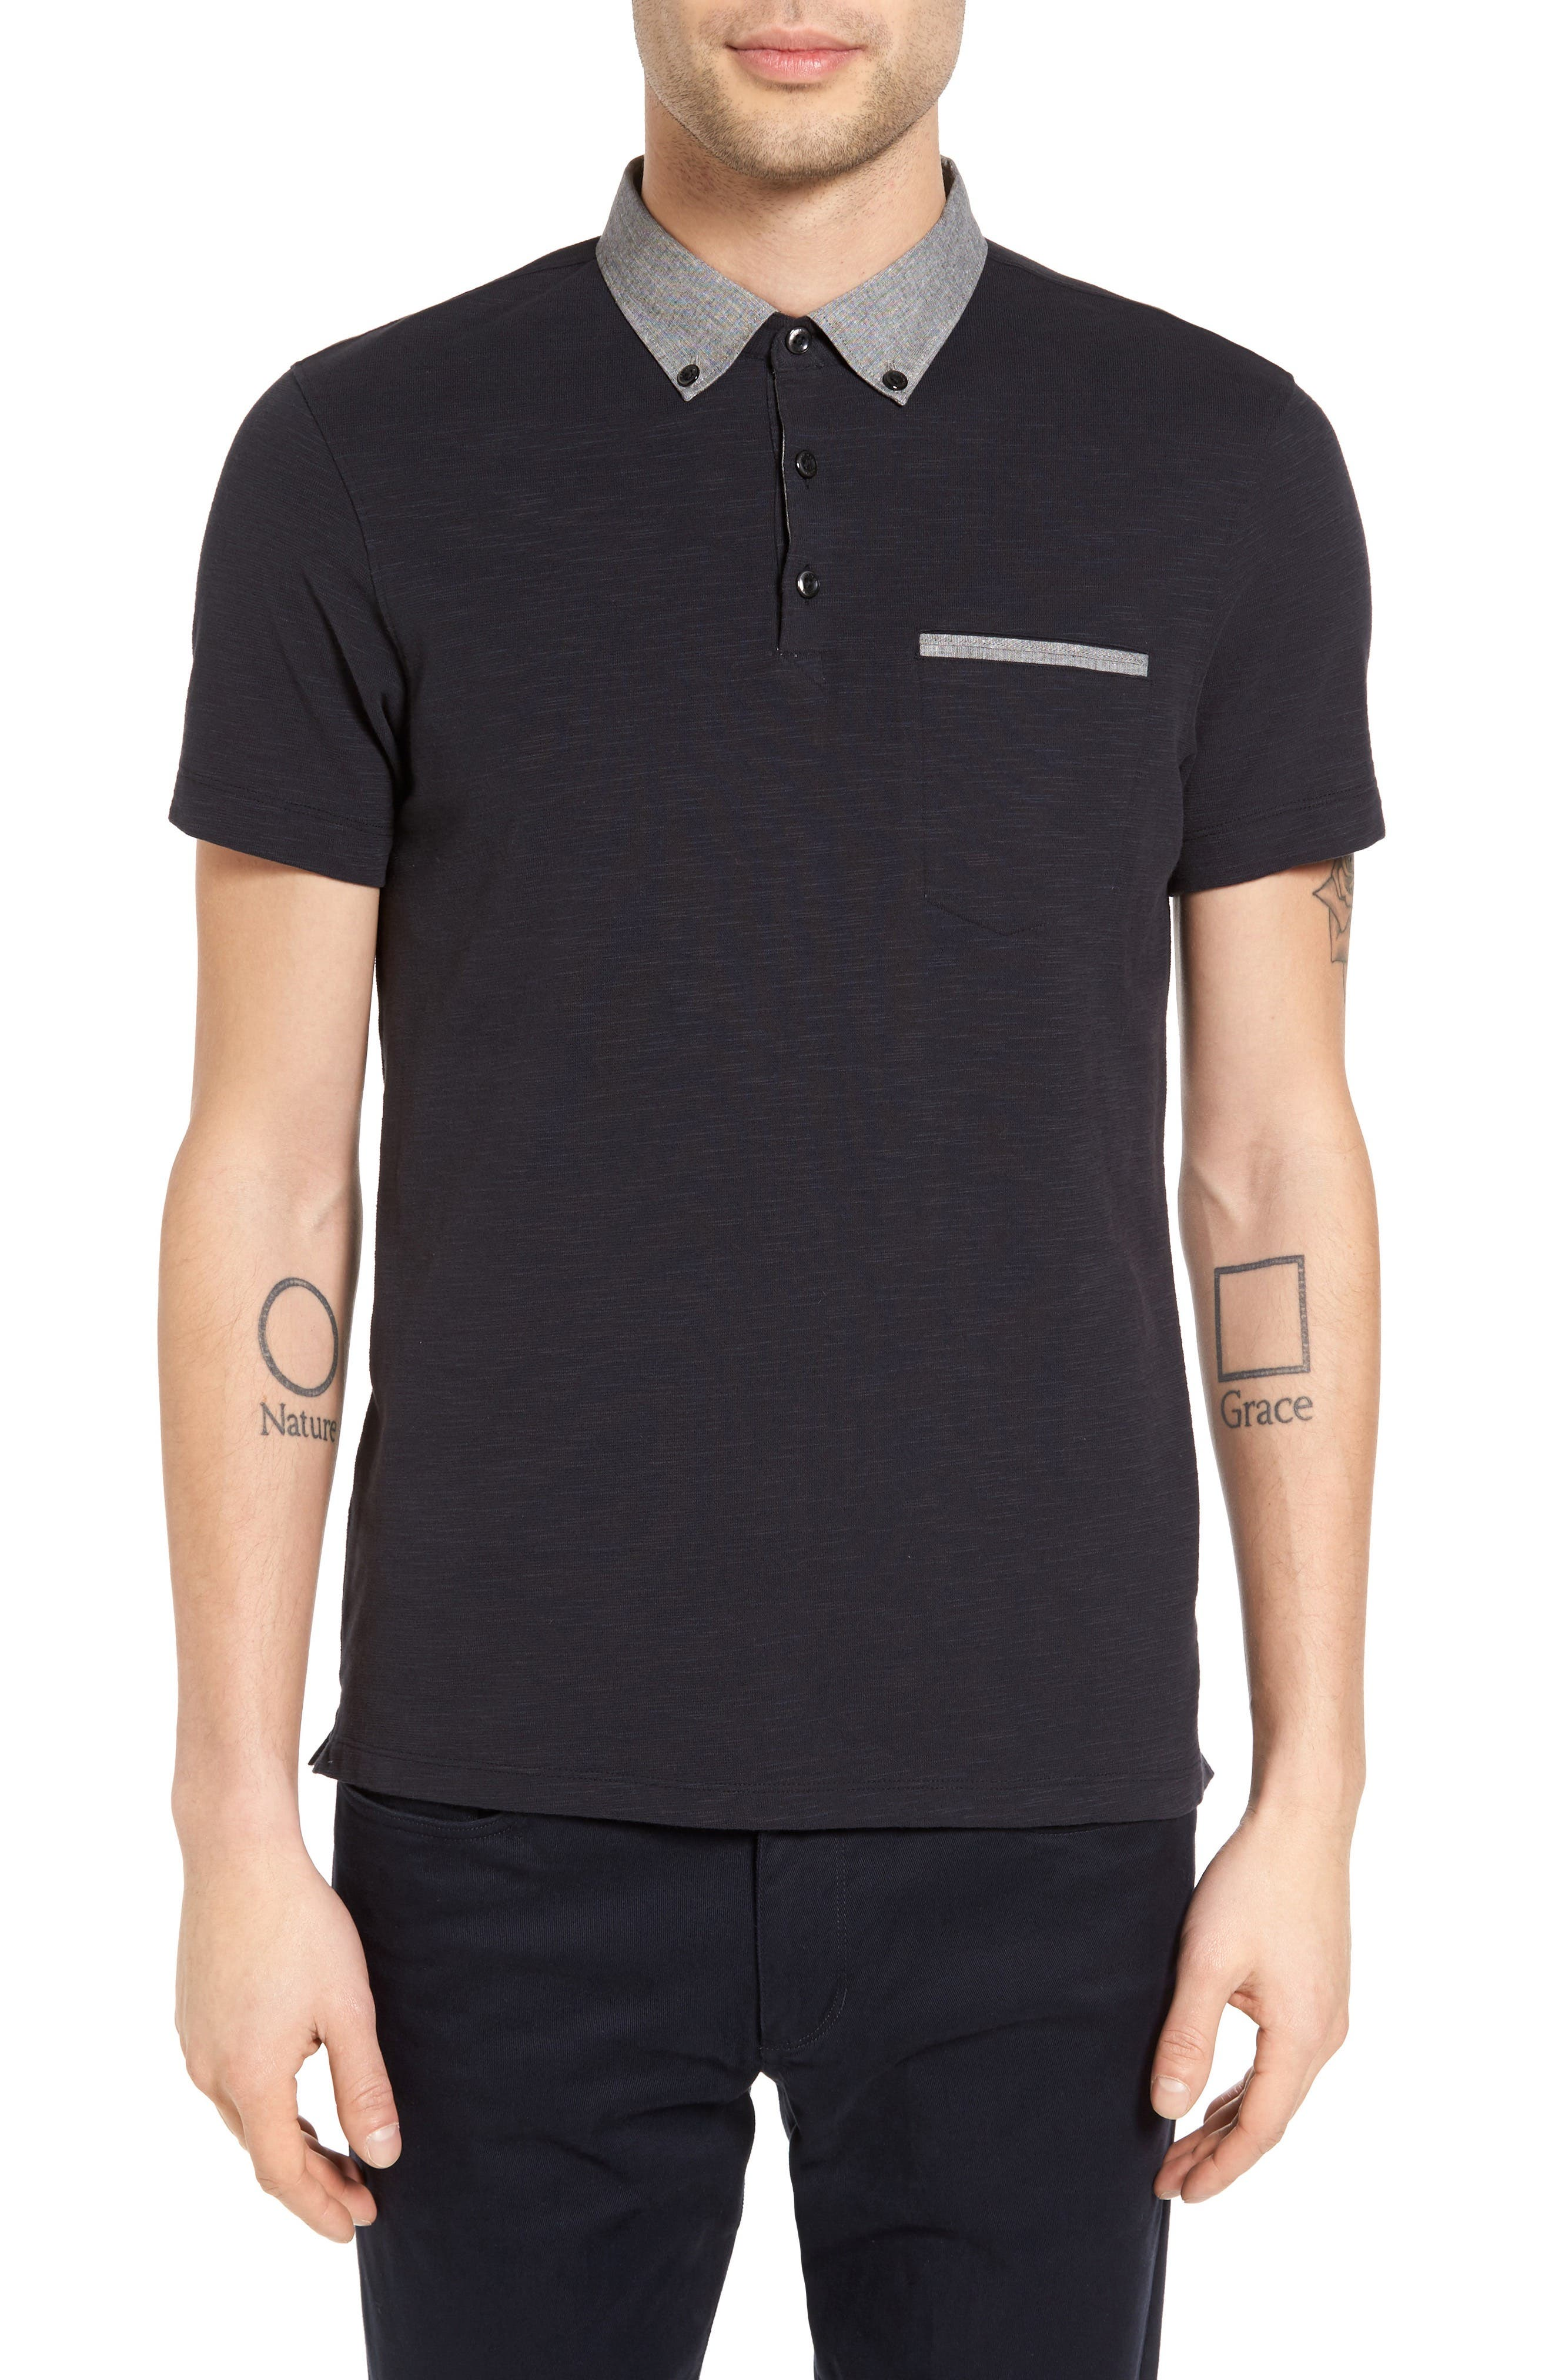 Alternate Image 1 Selected - Good Man Brand Woven Collar Slub Jersey Polo